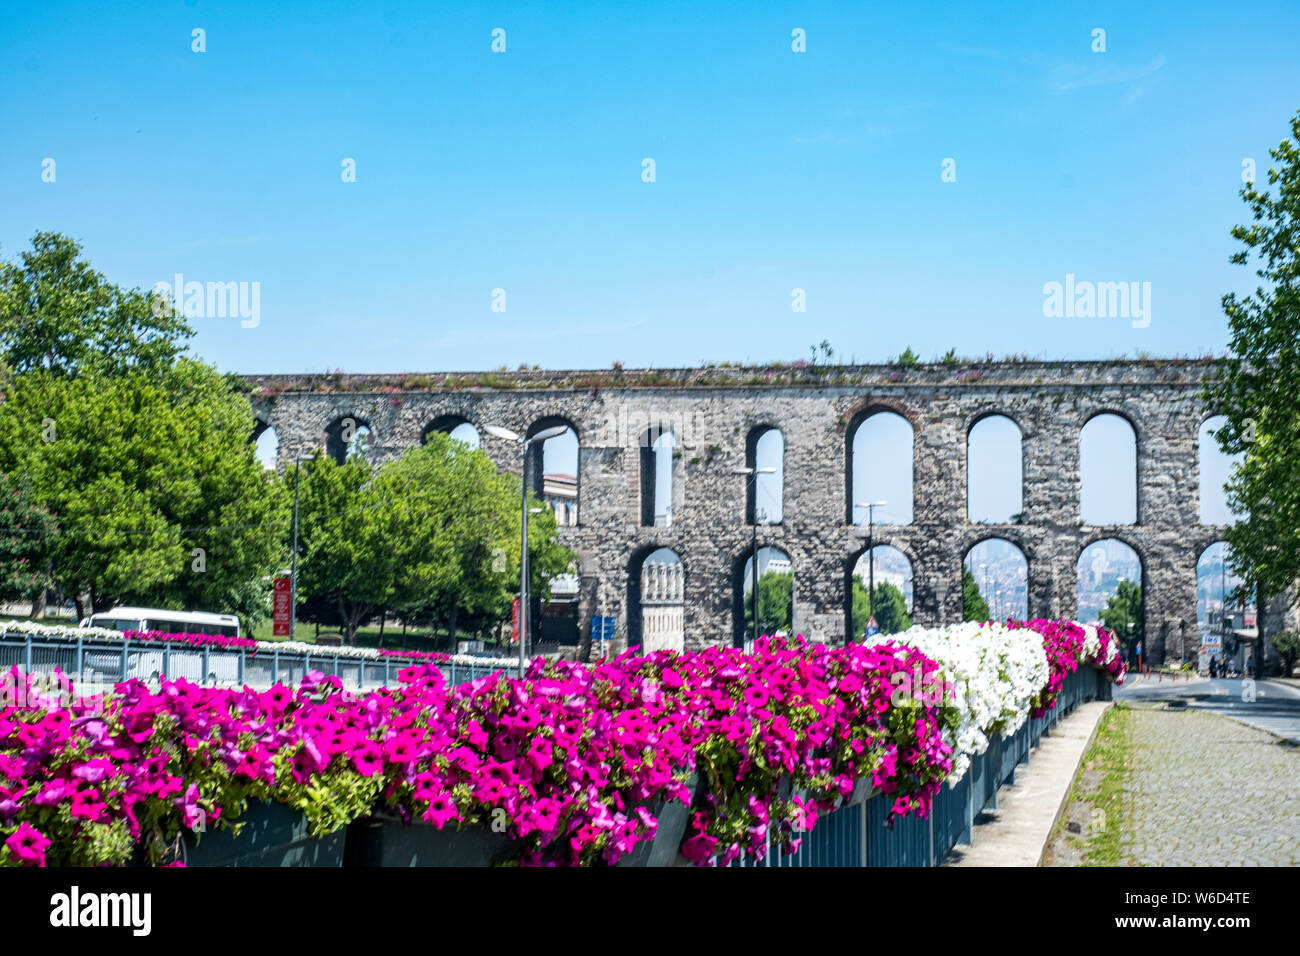 The Valens Aqueduct built by the Romans and towering over the modern city of Istanbul, Turkey in the springtime on a sunny day. Stock Photo